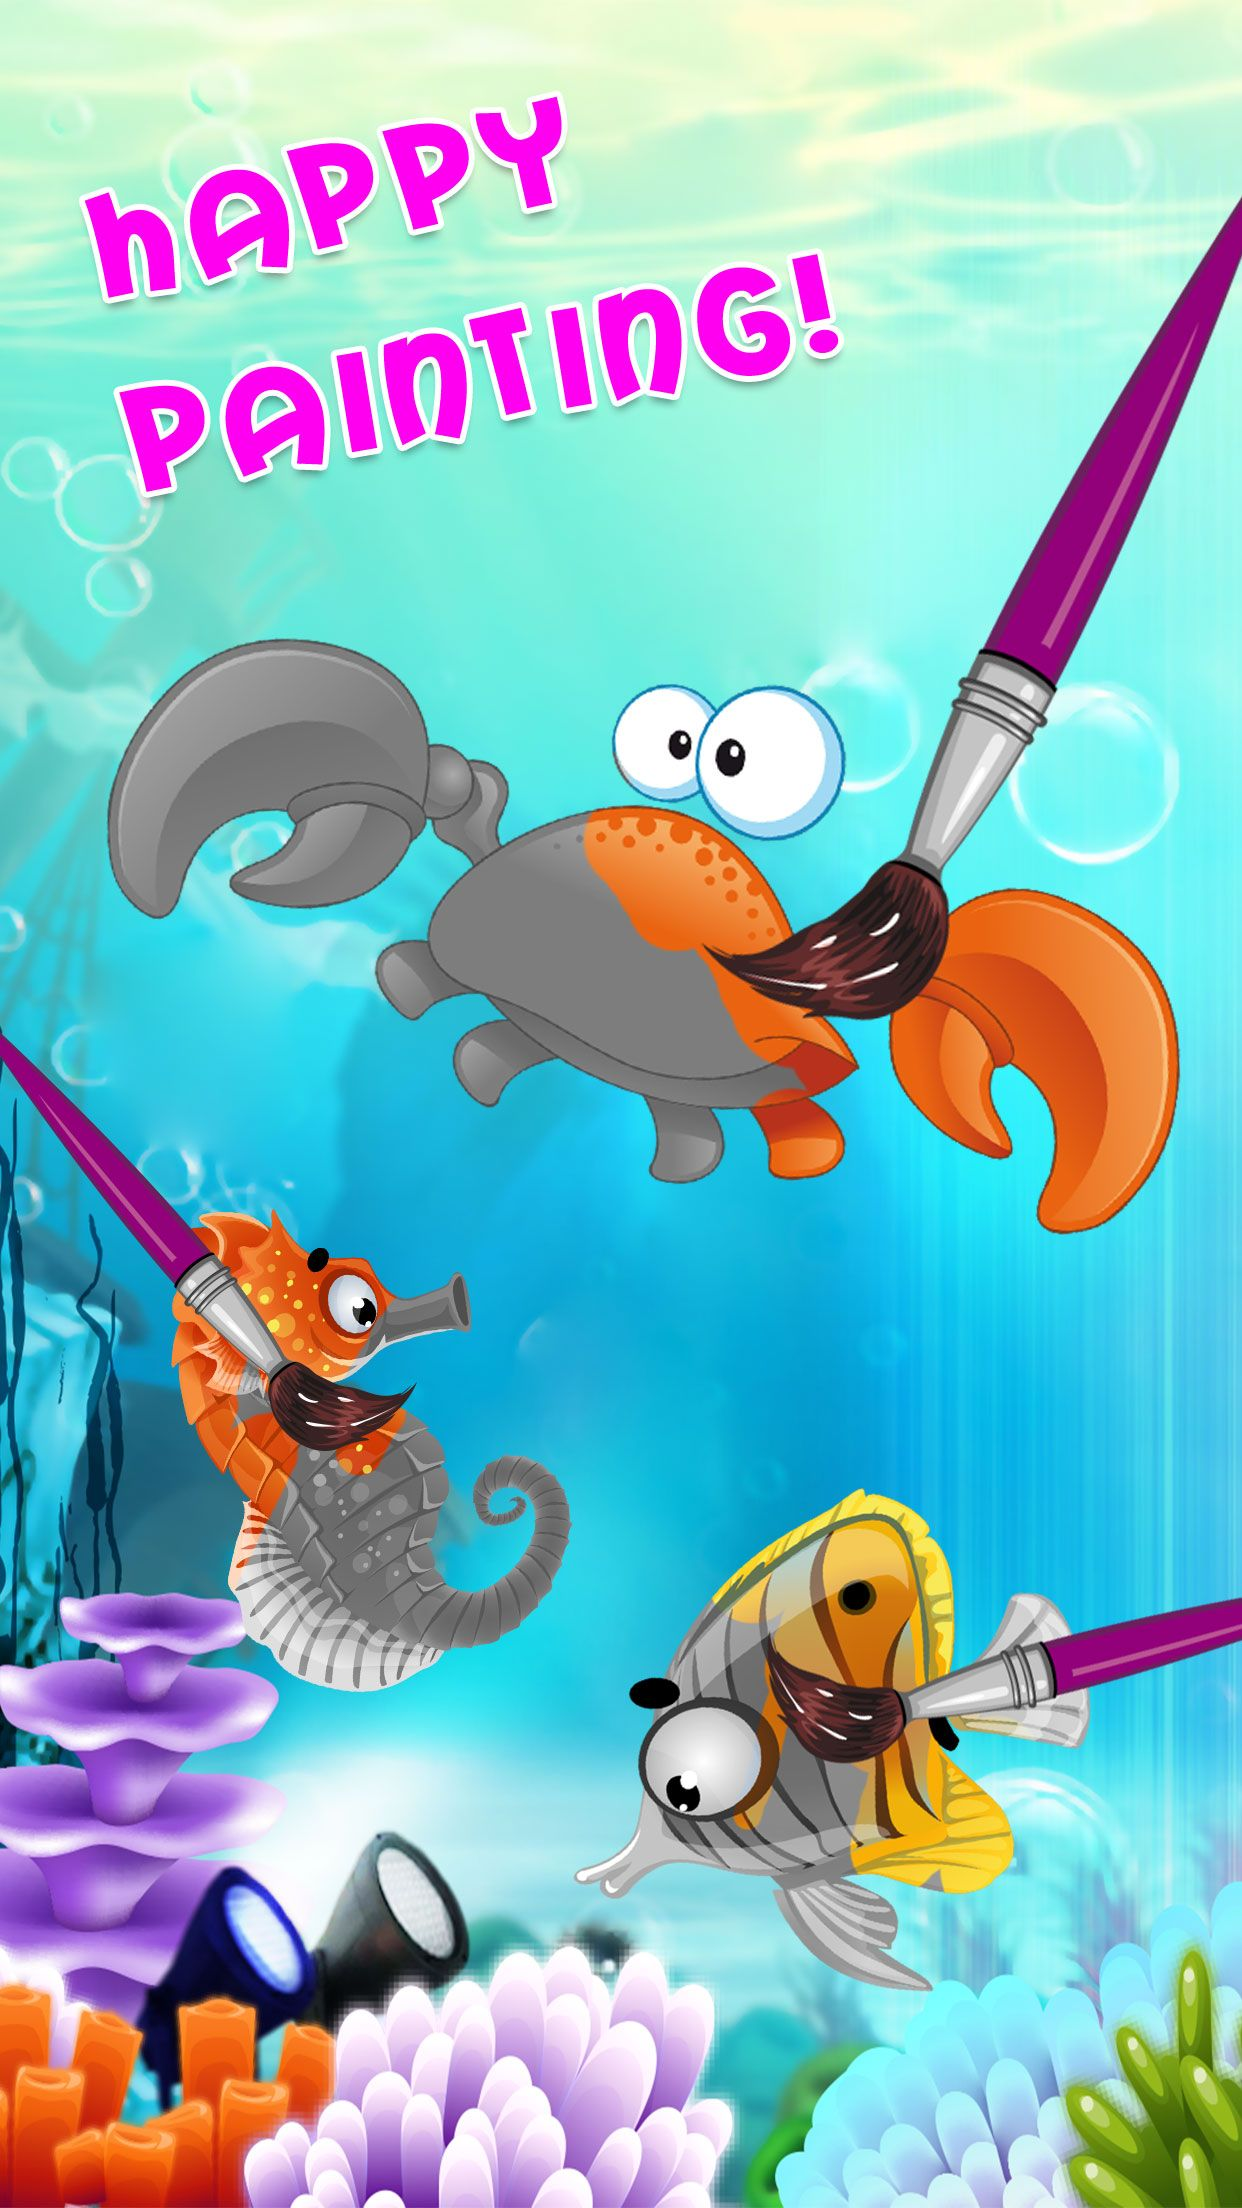 Exciting underwater adventures like puzzle solving and